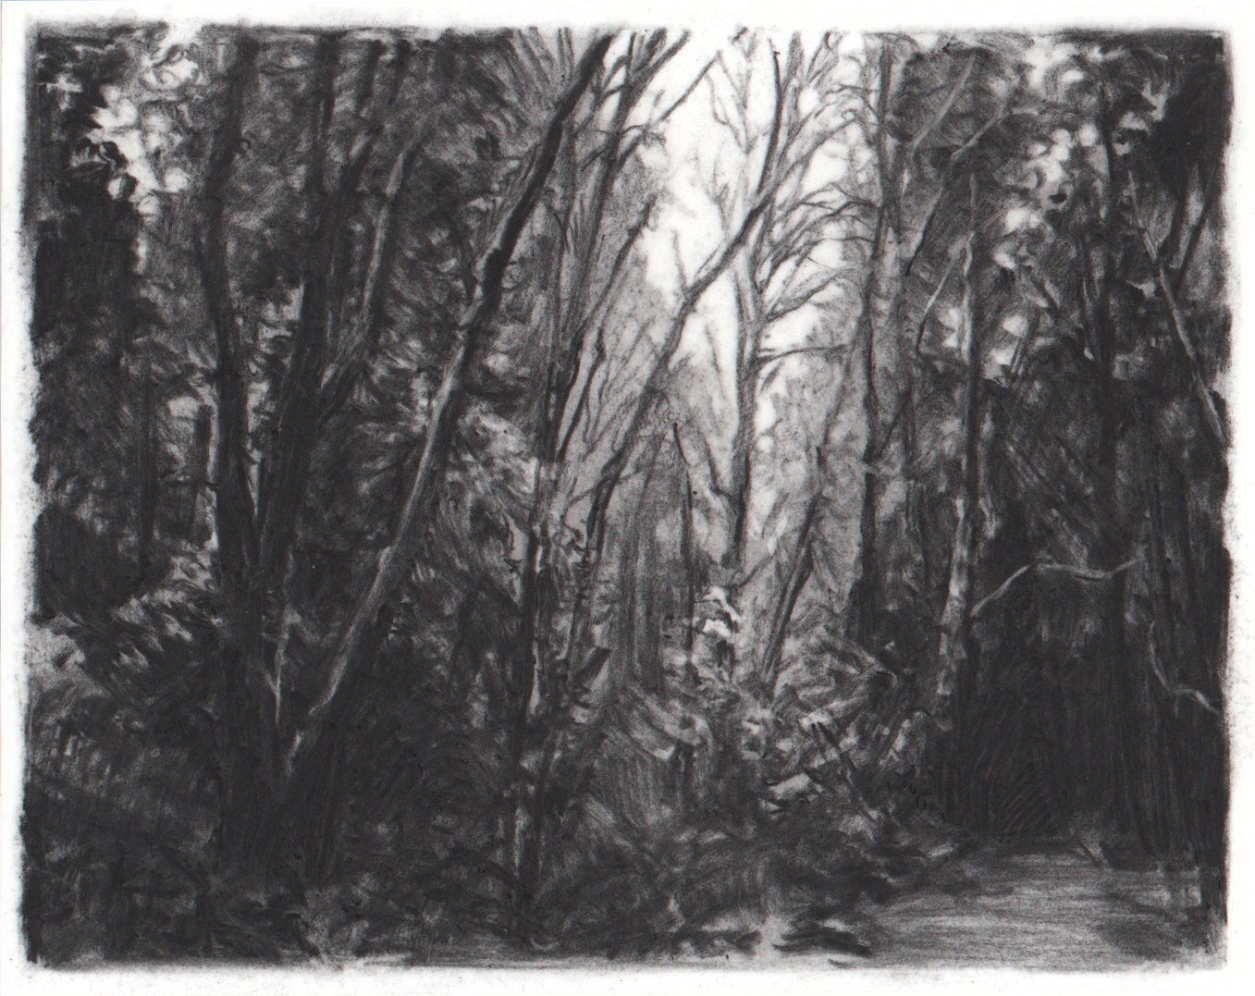 Coming Night,  2013. Charcoal on mylar.3.5 x 4.5 inches.  Available